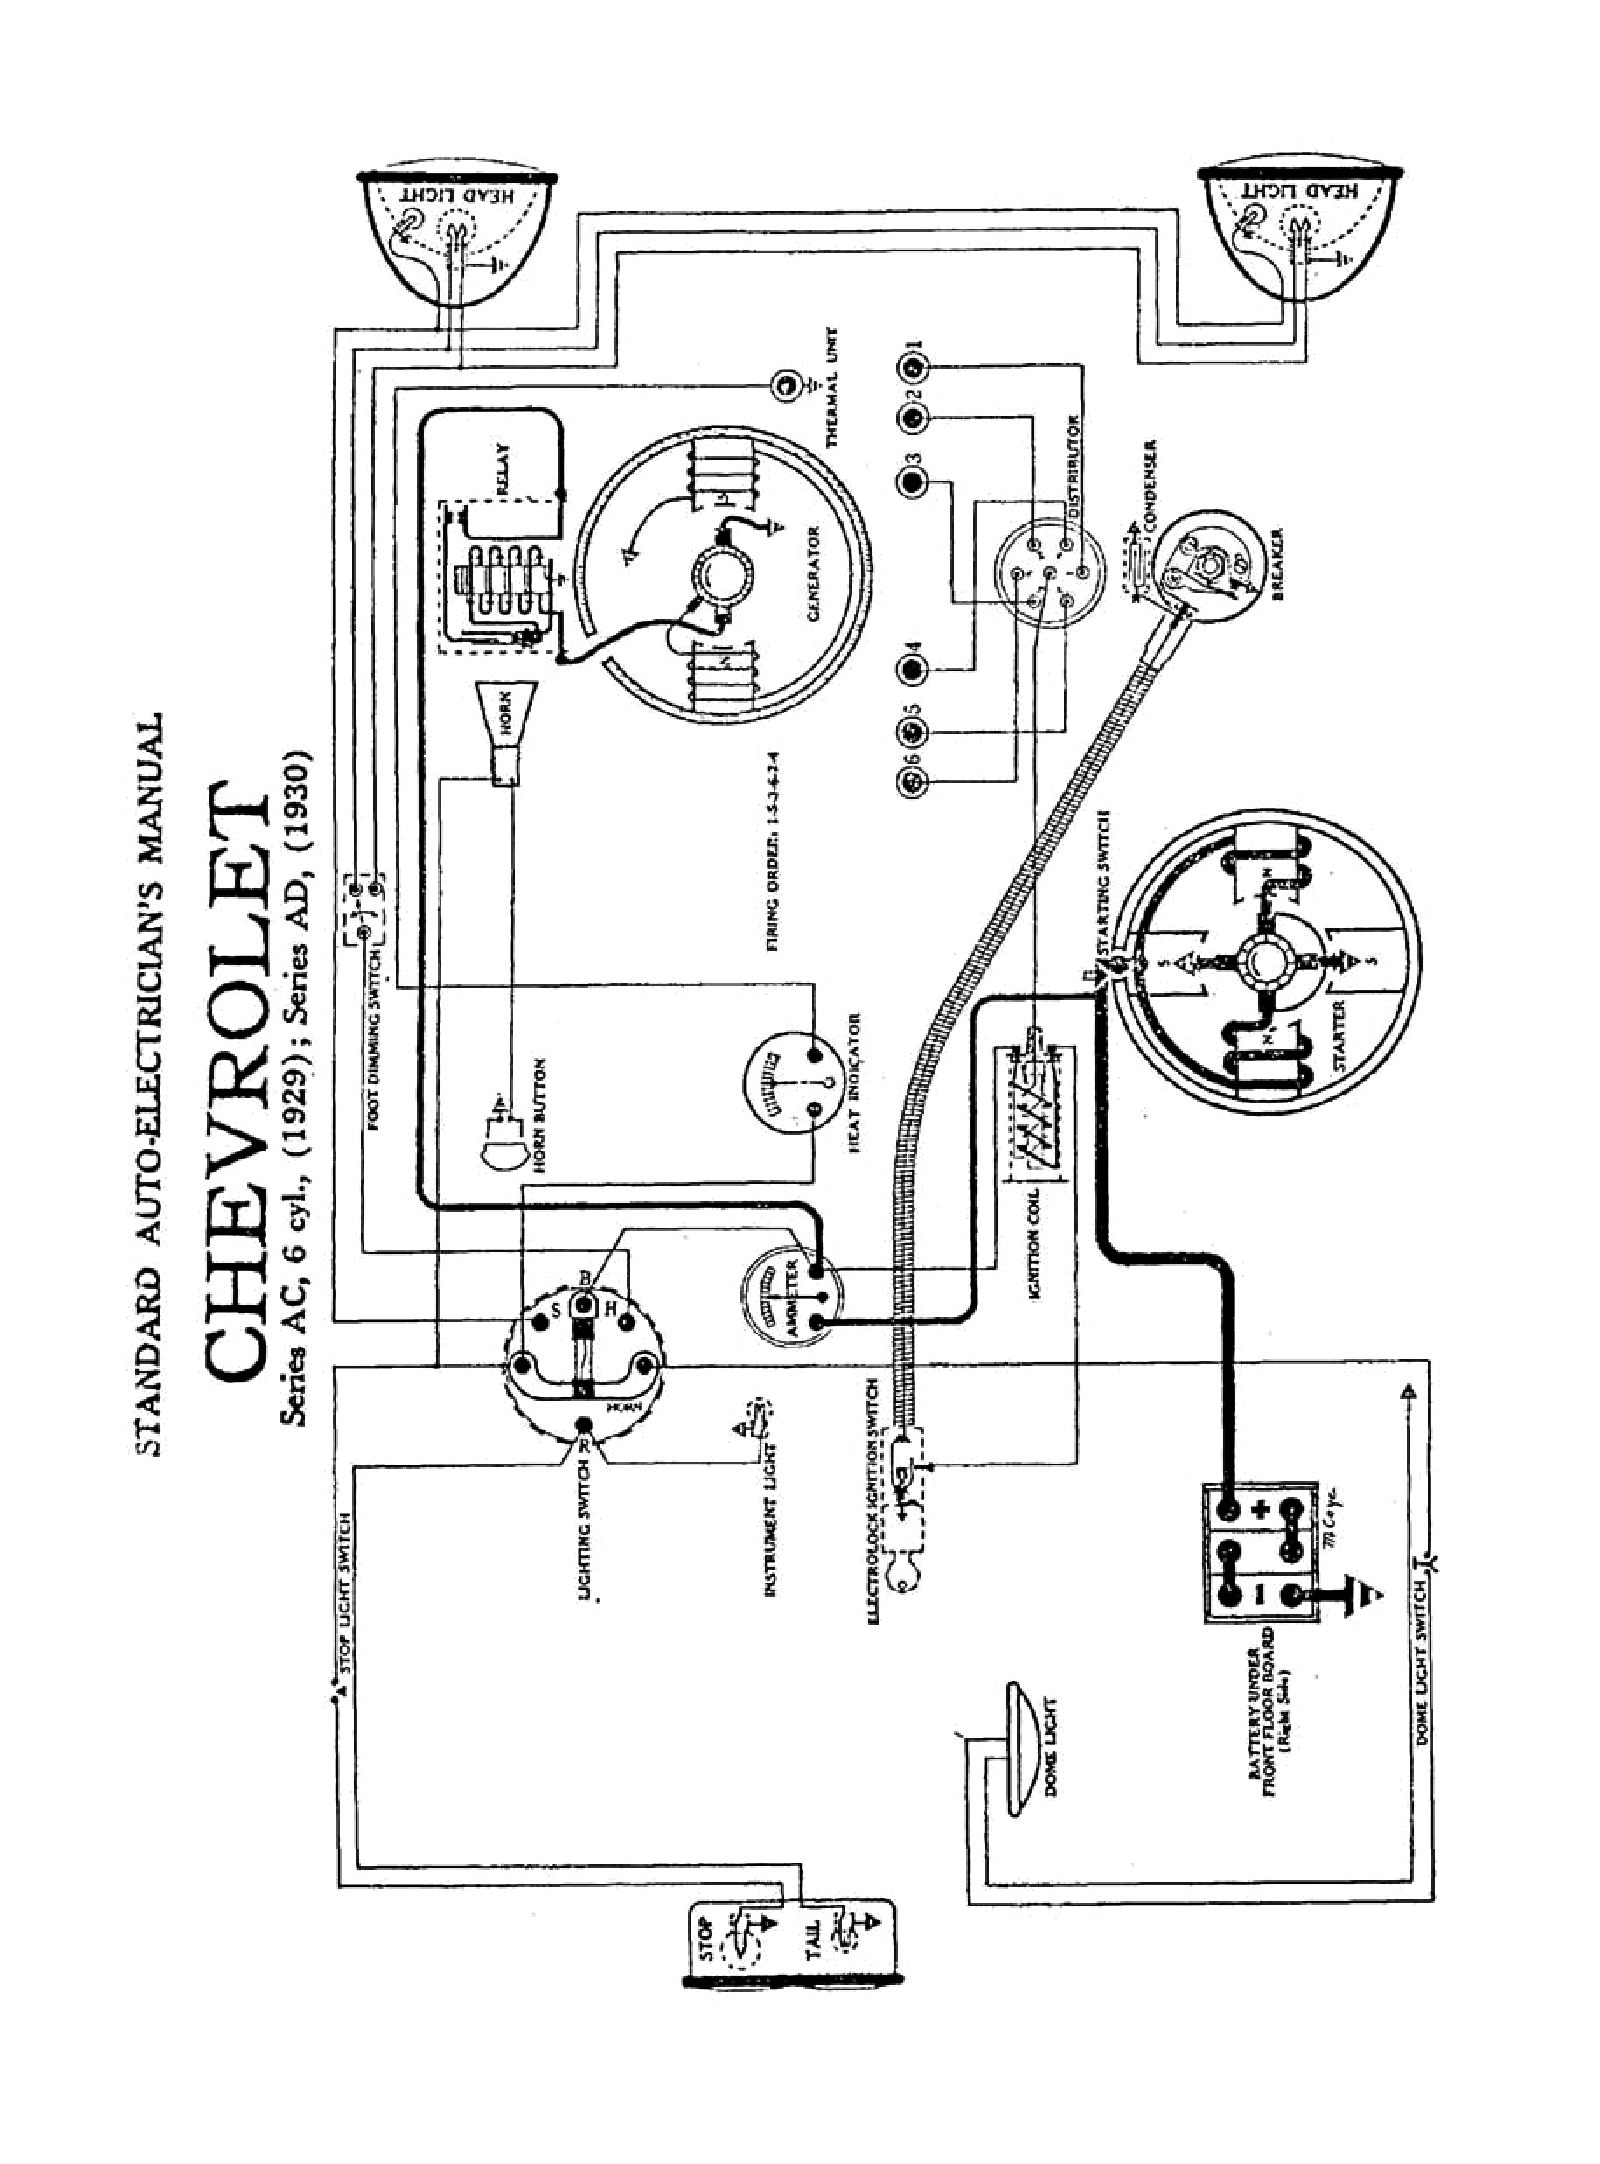 1930 Ford Stop Light Wiring Diagram, 1930, Free Engine